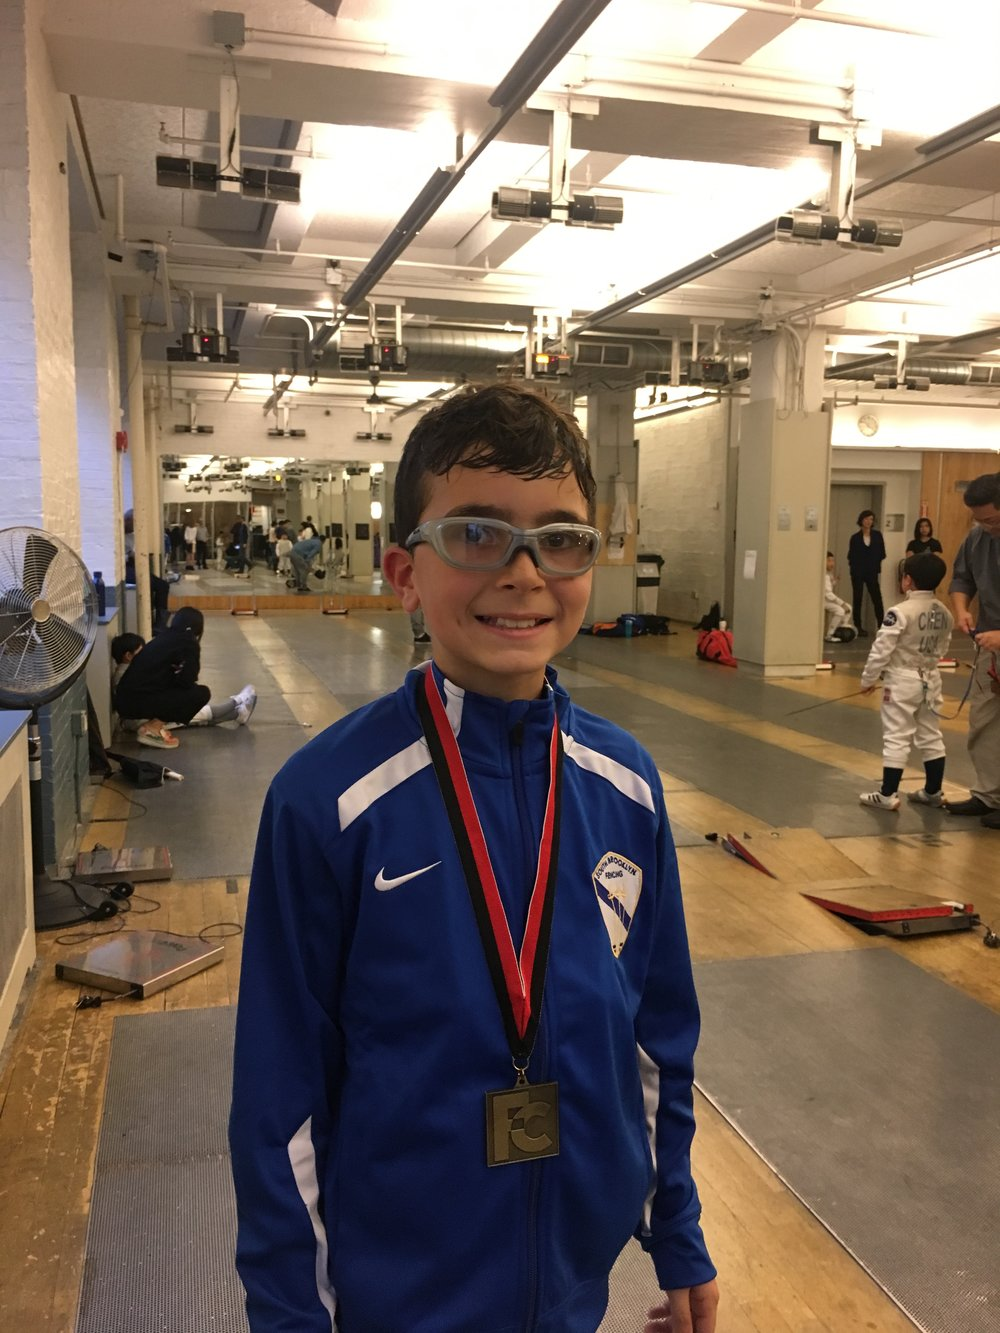 FC YOUTH Y10 Sebastian Garcia 1st place January 21st 2018